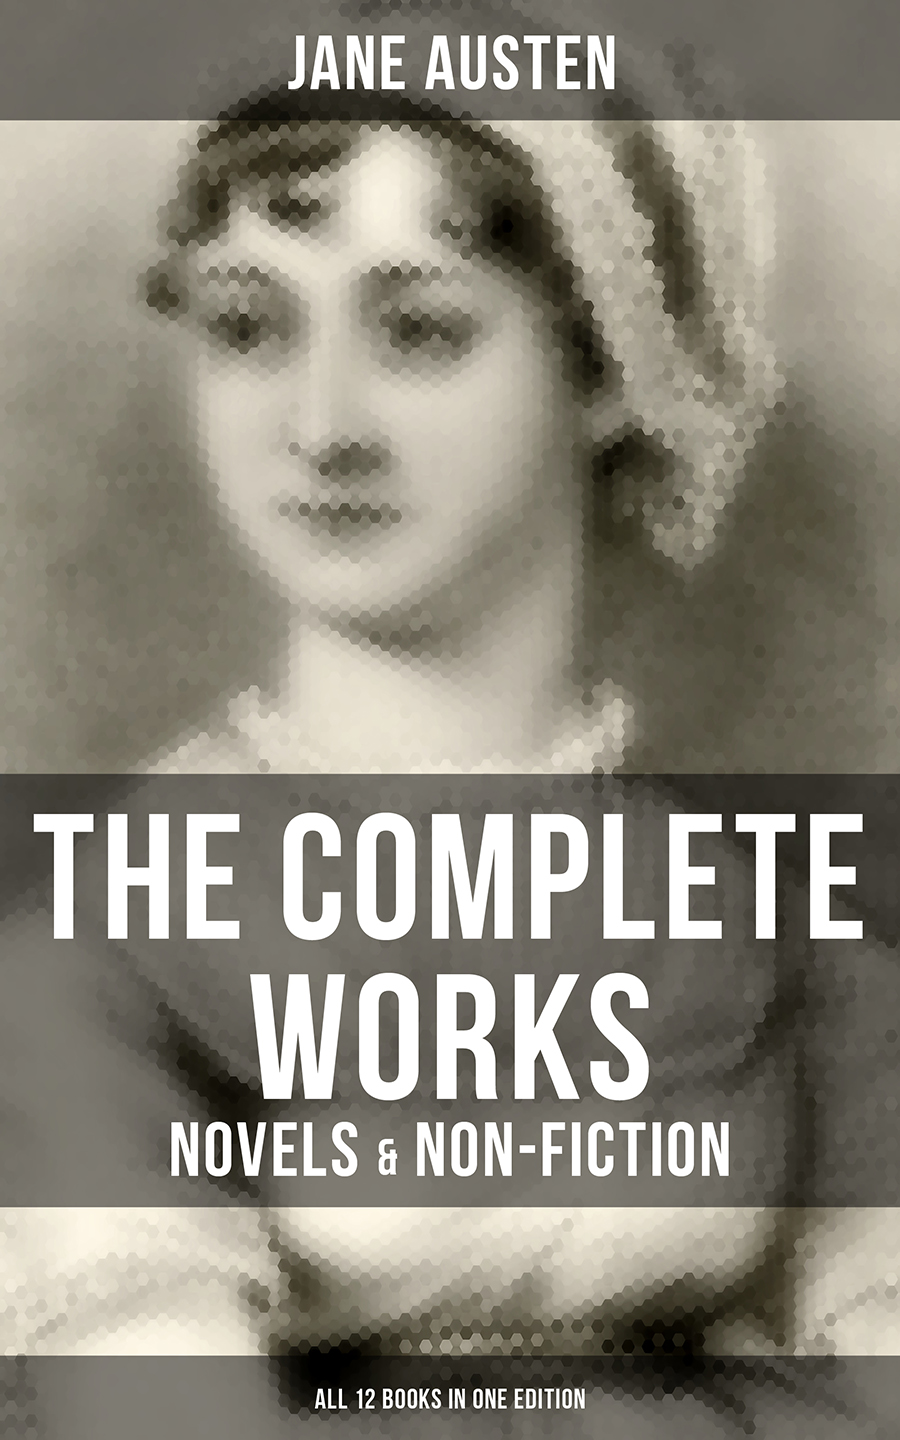 Jane Austen The Complete Works of Jane Austen: Novels & Non-Fiction (All 12 Books in One Edition) jane